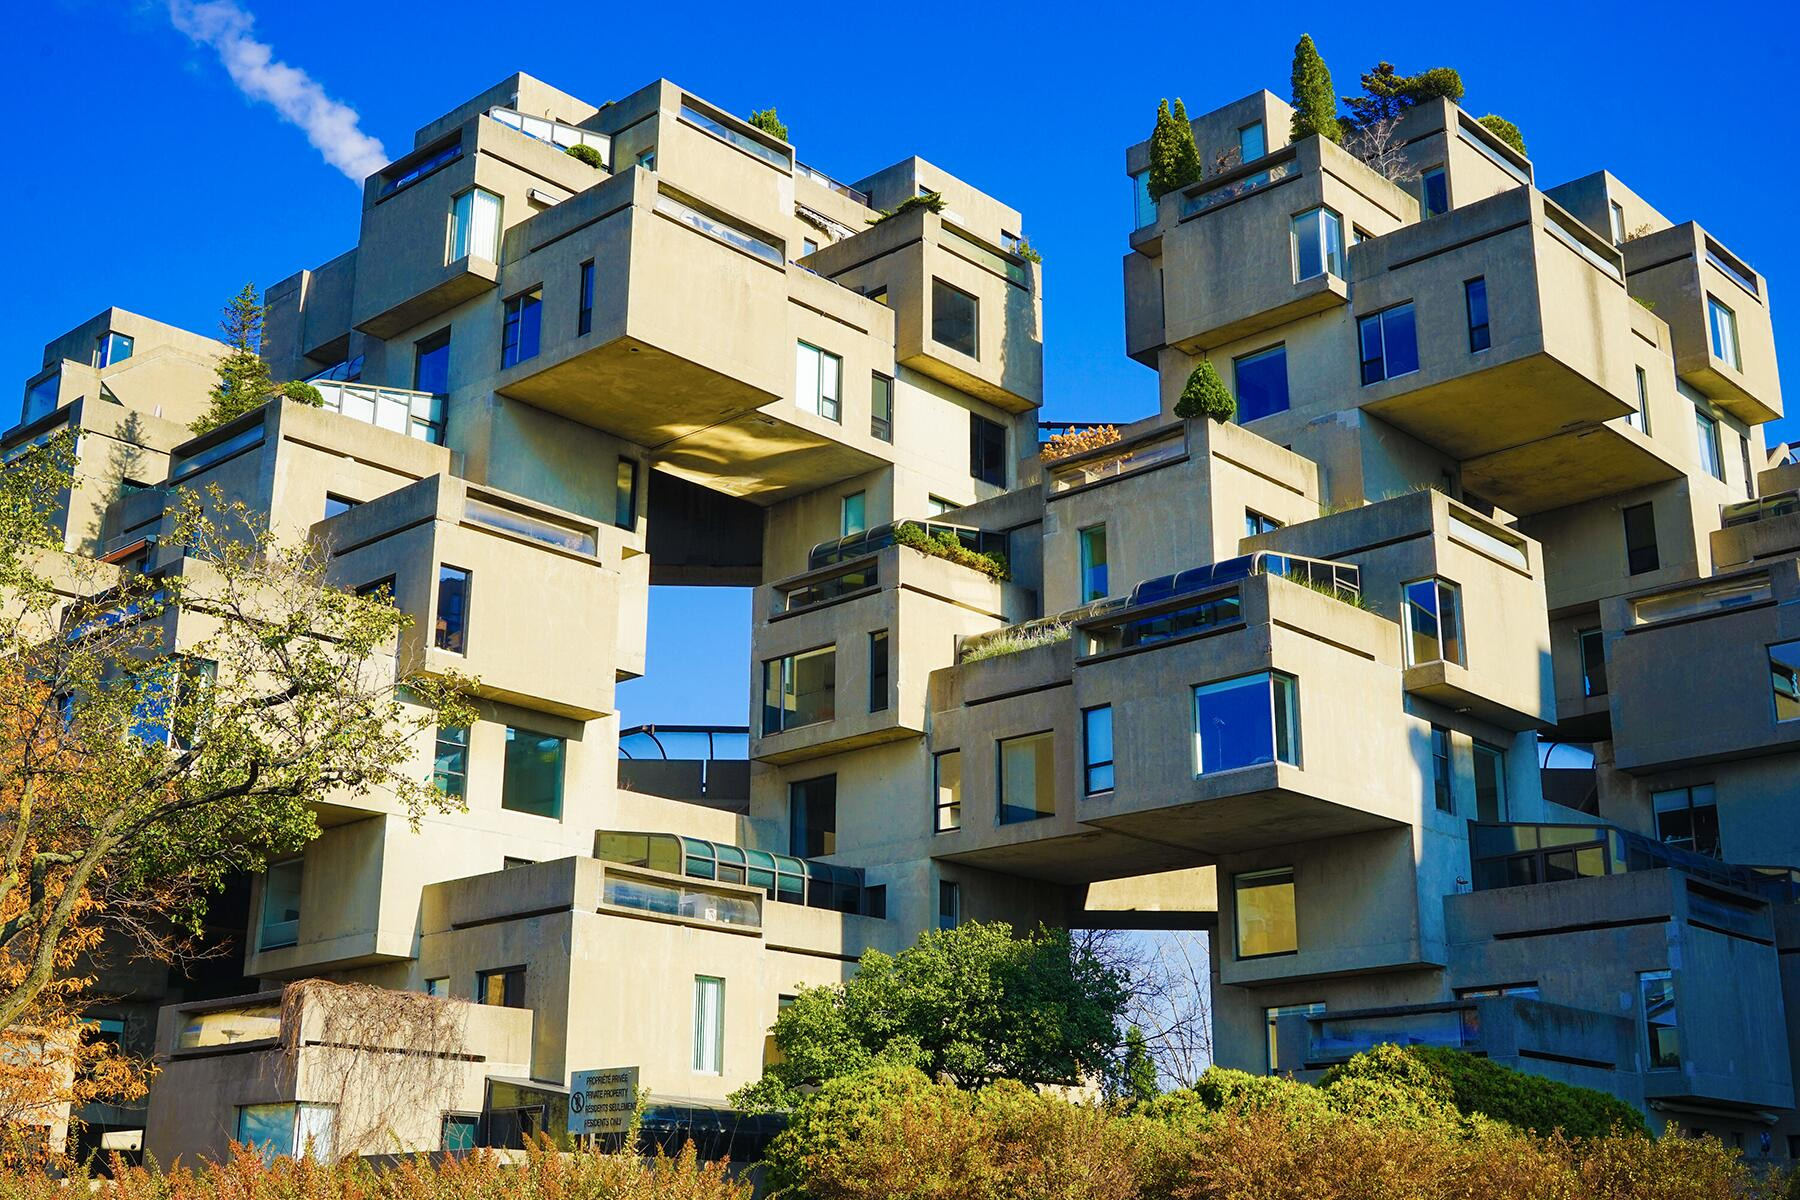 Love It or Hate It: 12 Striking Examples of the World's Most Controversial Architectural Style